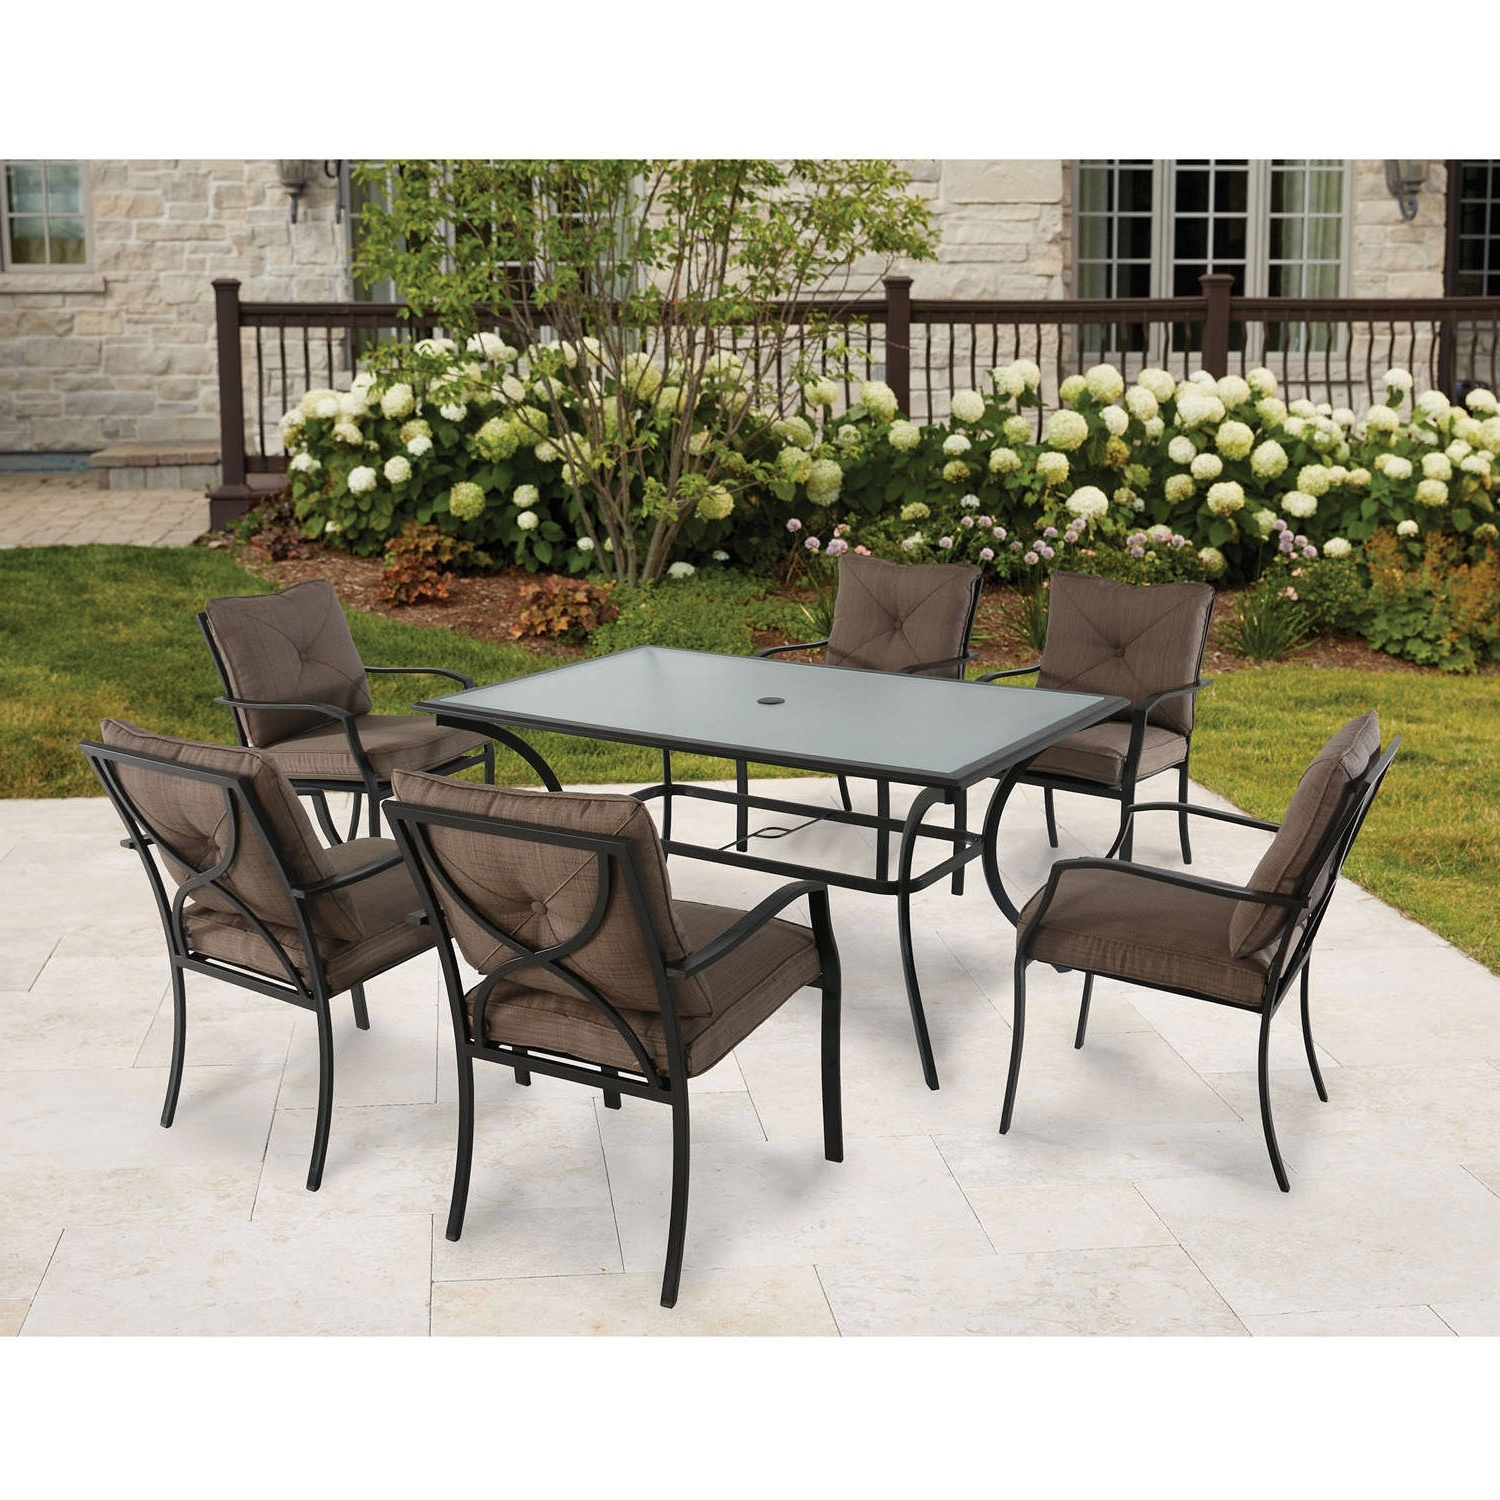 Cambridge Crawford 7 Piece Outdoor Dining Set – Walmart In Recent Crawford 6 Piece Rectangle Dining Sets (View 18 of 25)